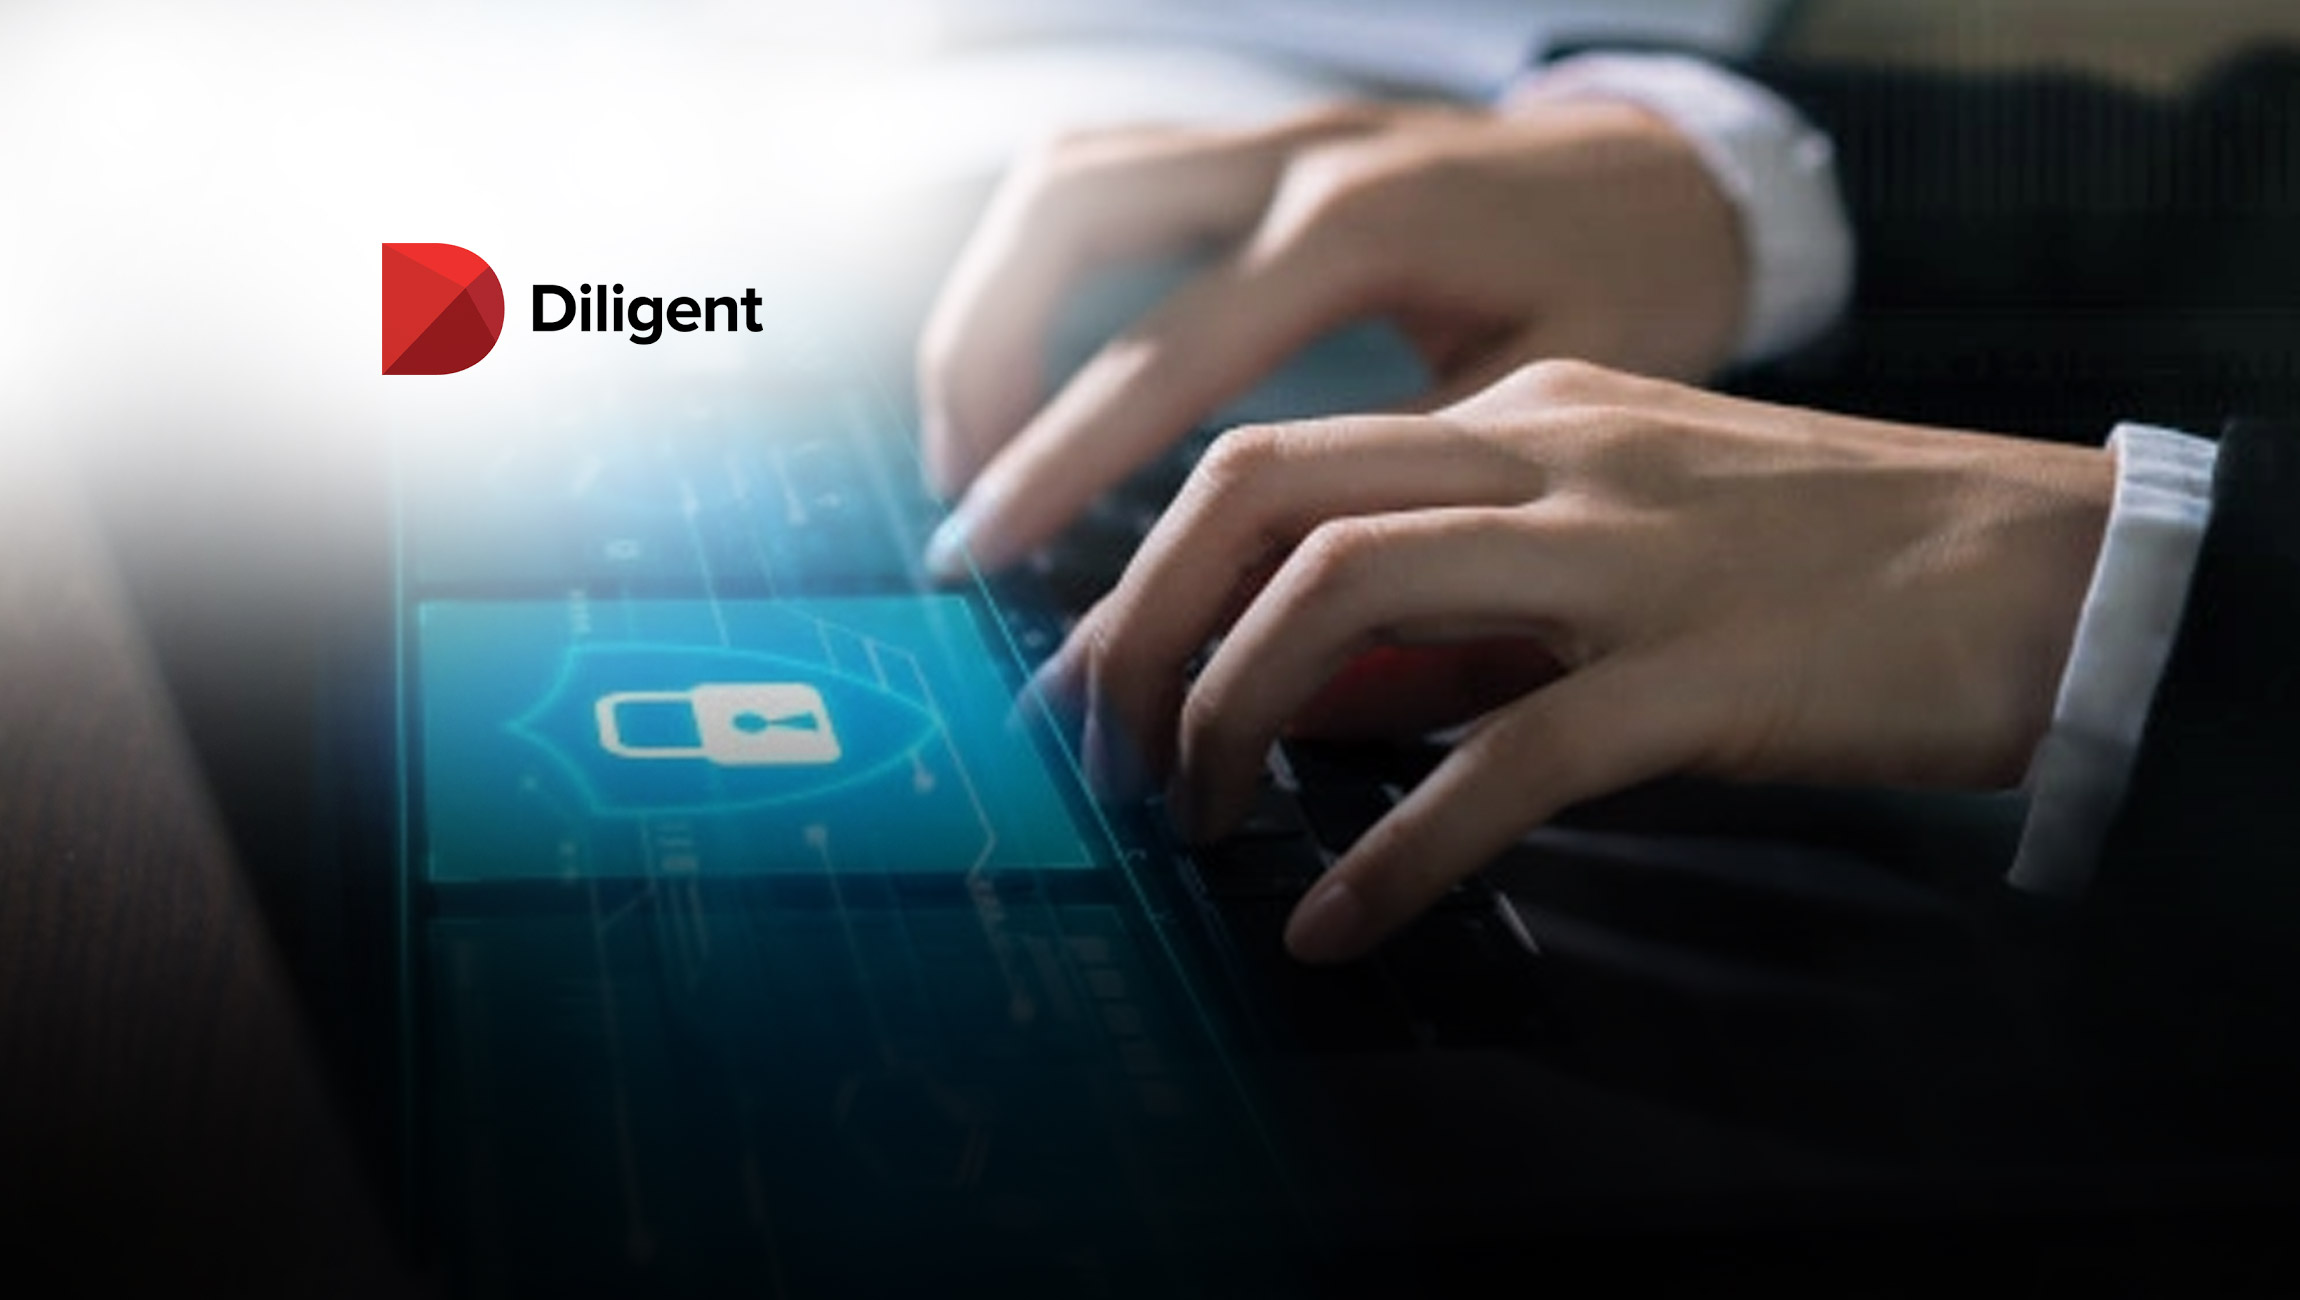 Modern-Governance-14.0-Diligent-Delivers-Cyber-Risk-Scores-Directly-to-Board-Directors